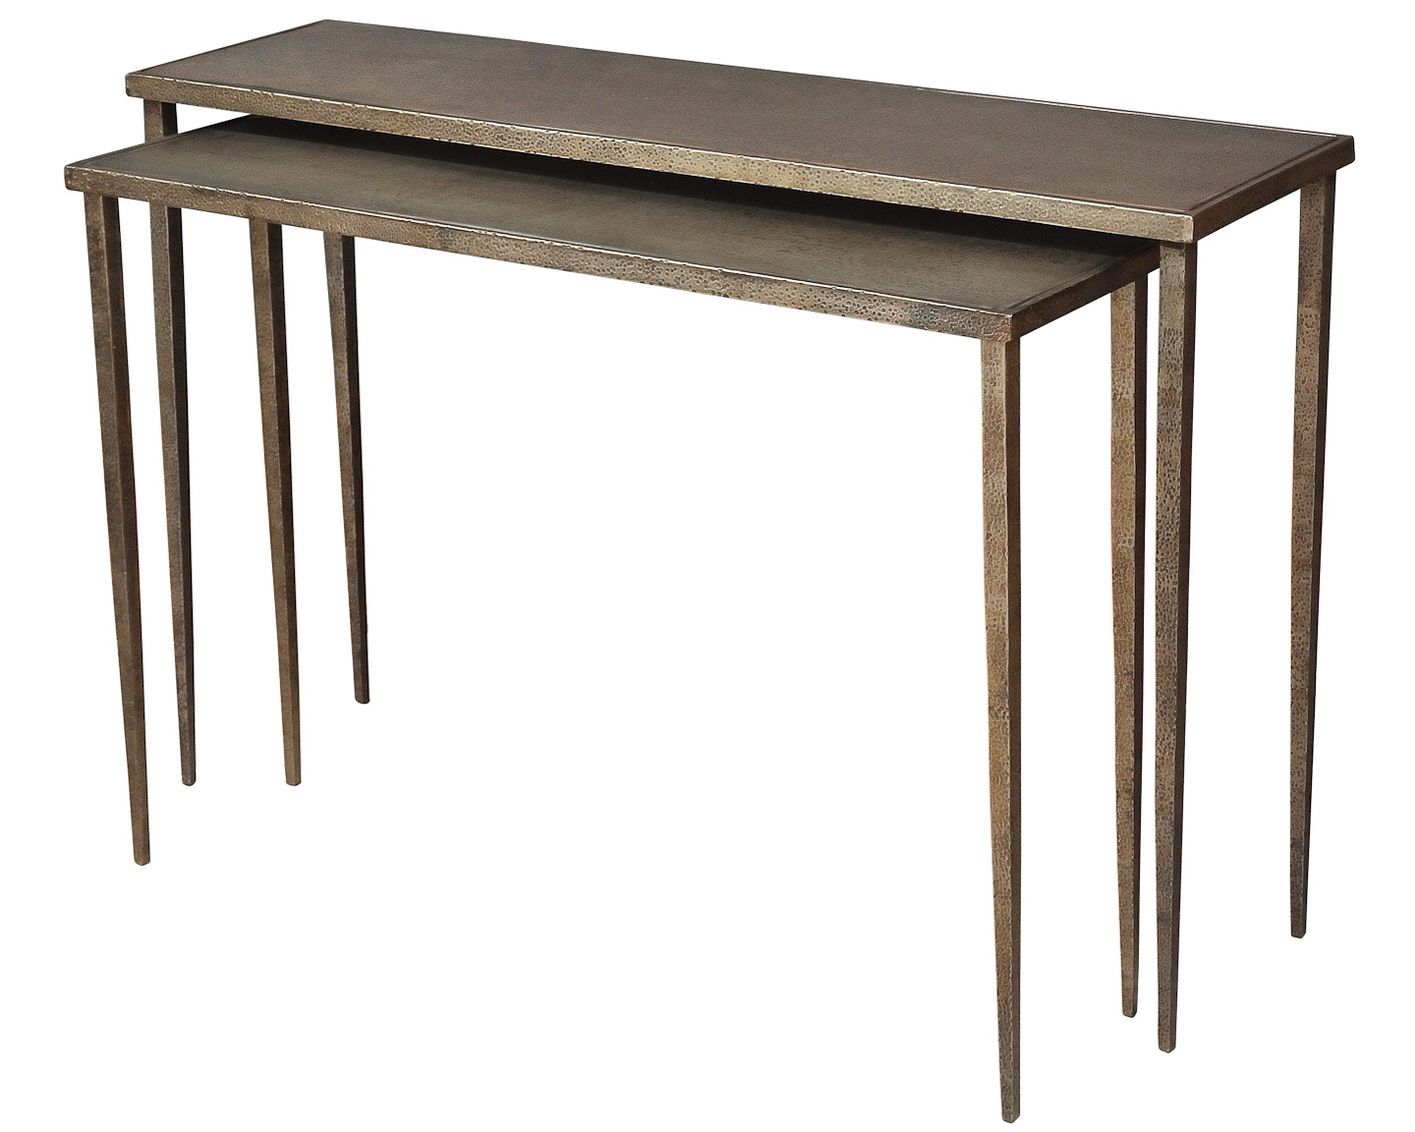 Hammered Sheet Metal Console Tables | My Designs | Pinterest With Parsons Clear Glass Top & Elm Base 48x16 Console Tables (View 8 of 30)